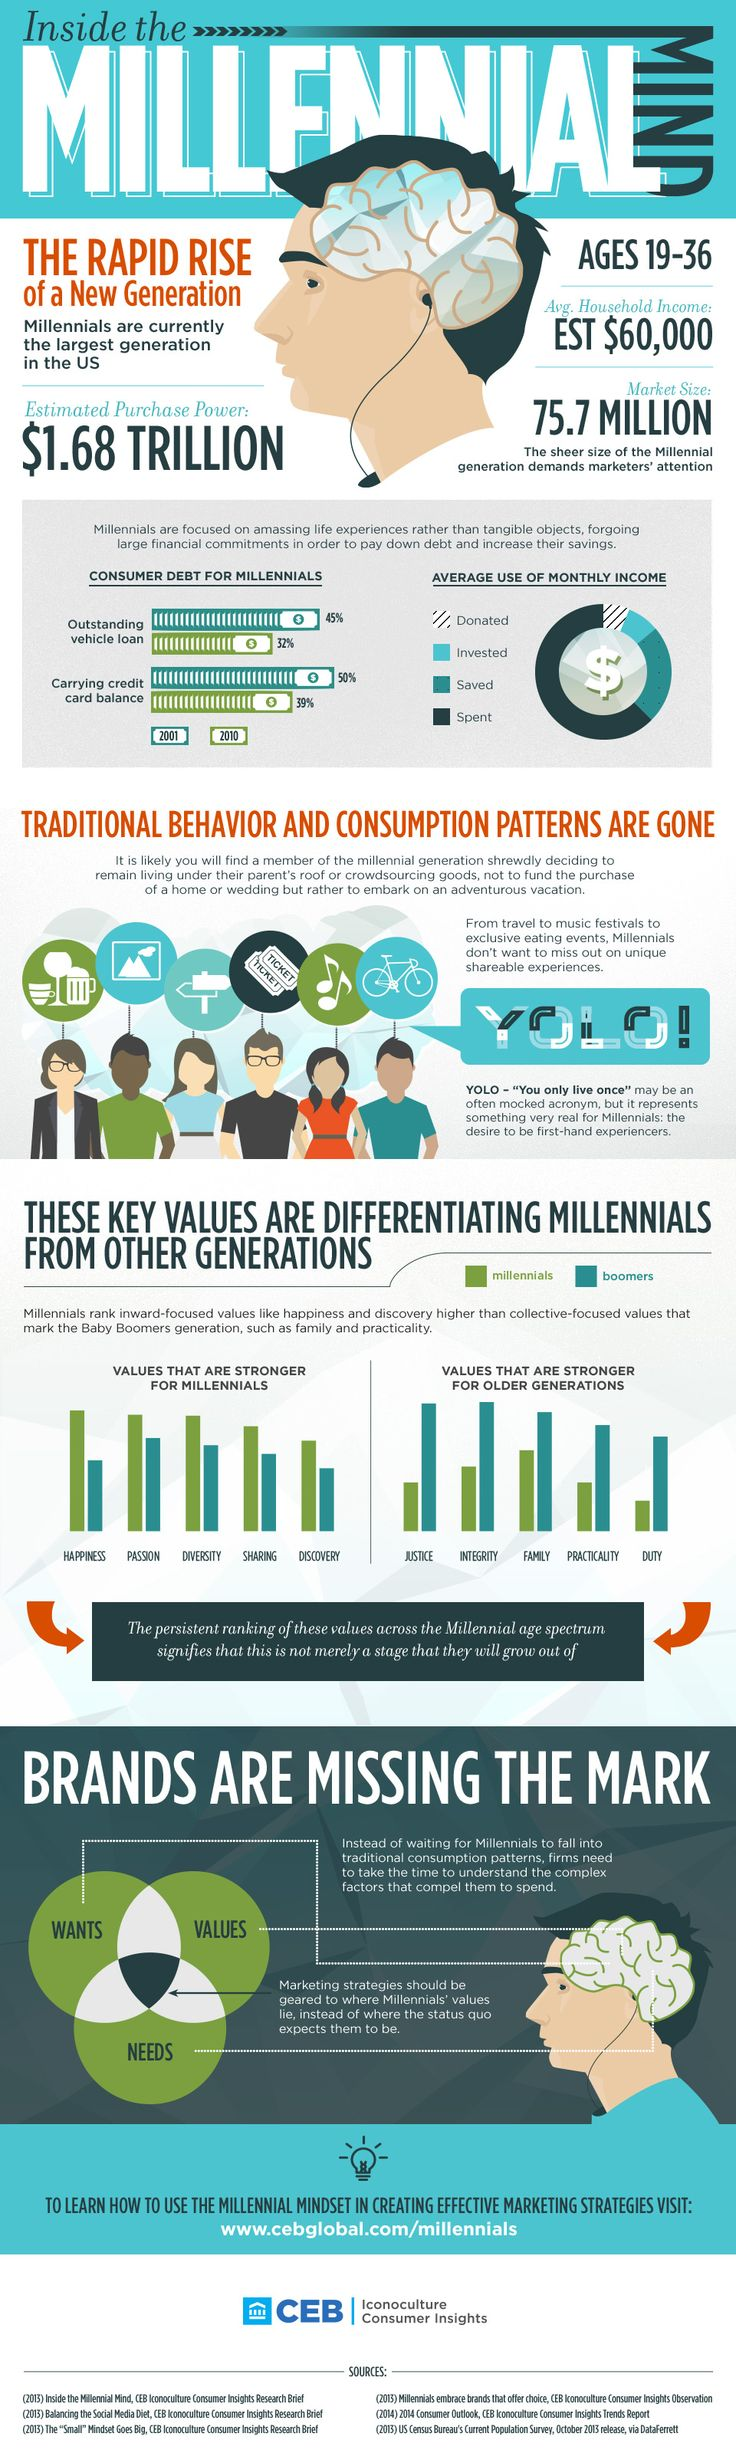 Everyone seems to be talking about Millennials today. It's not just because they are the largest generation by population size – though that certainly doesn't hurt. It's because we're all fascinated with them – news coverage, political campaigns, and of course, marketers trying to figure out how to reach them. [...]